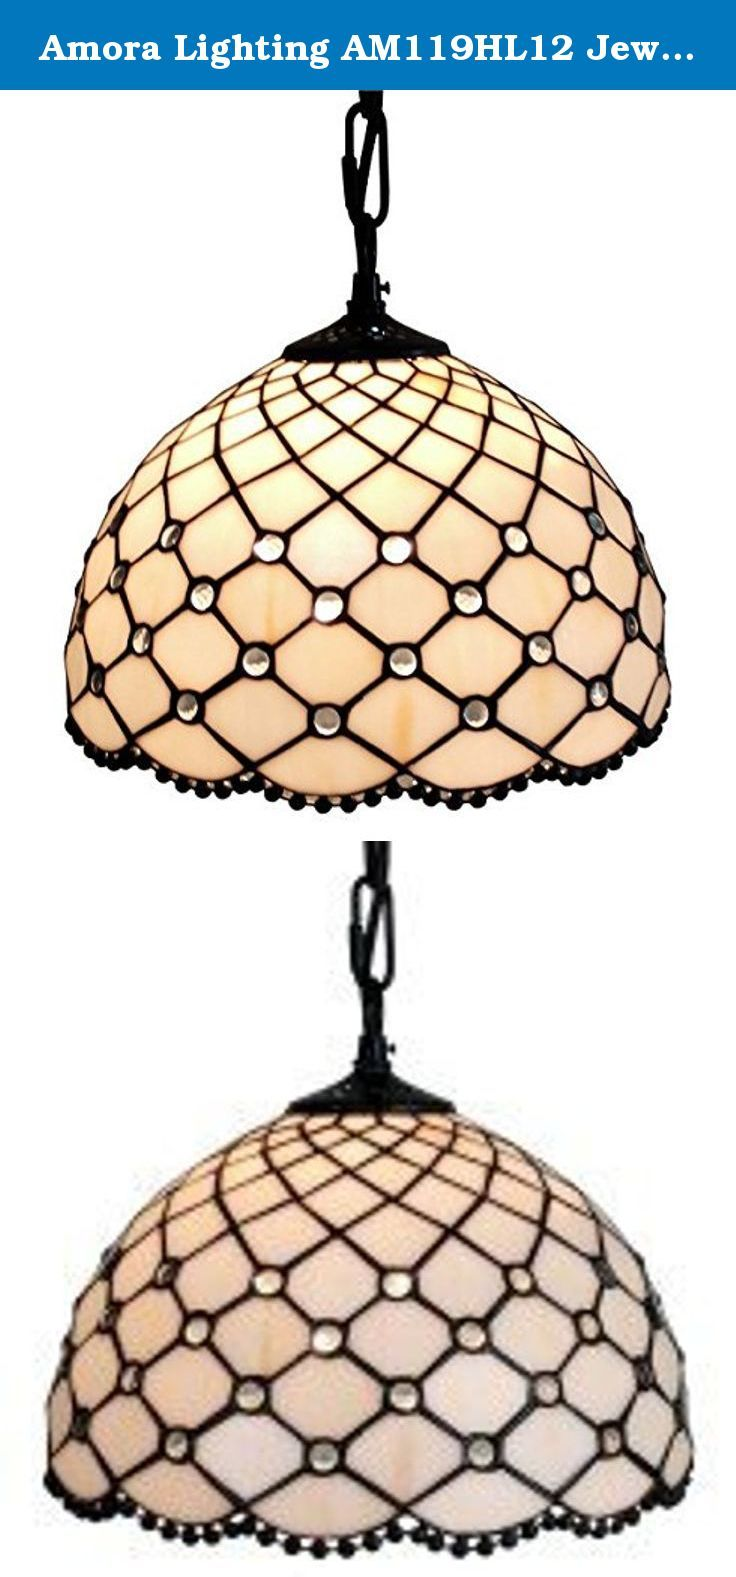 Amora Lighting AM119HL12 Jewel Tiffany Style Hanging Lamp 12 In. Bring a warm glow to your space with this attractive Tiffany-style art glass hanging lamp by Amora. Stunning glimmers of organic colors are arranged in a geometric pattern to complement the dark brown finished base. endearing this art glass hanging lamp to any decor. The glass shade directs the light from one bulb downward and diffuses the amount of light coming through for a warm glow. • Features 165 glass pieces and 60…